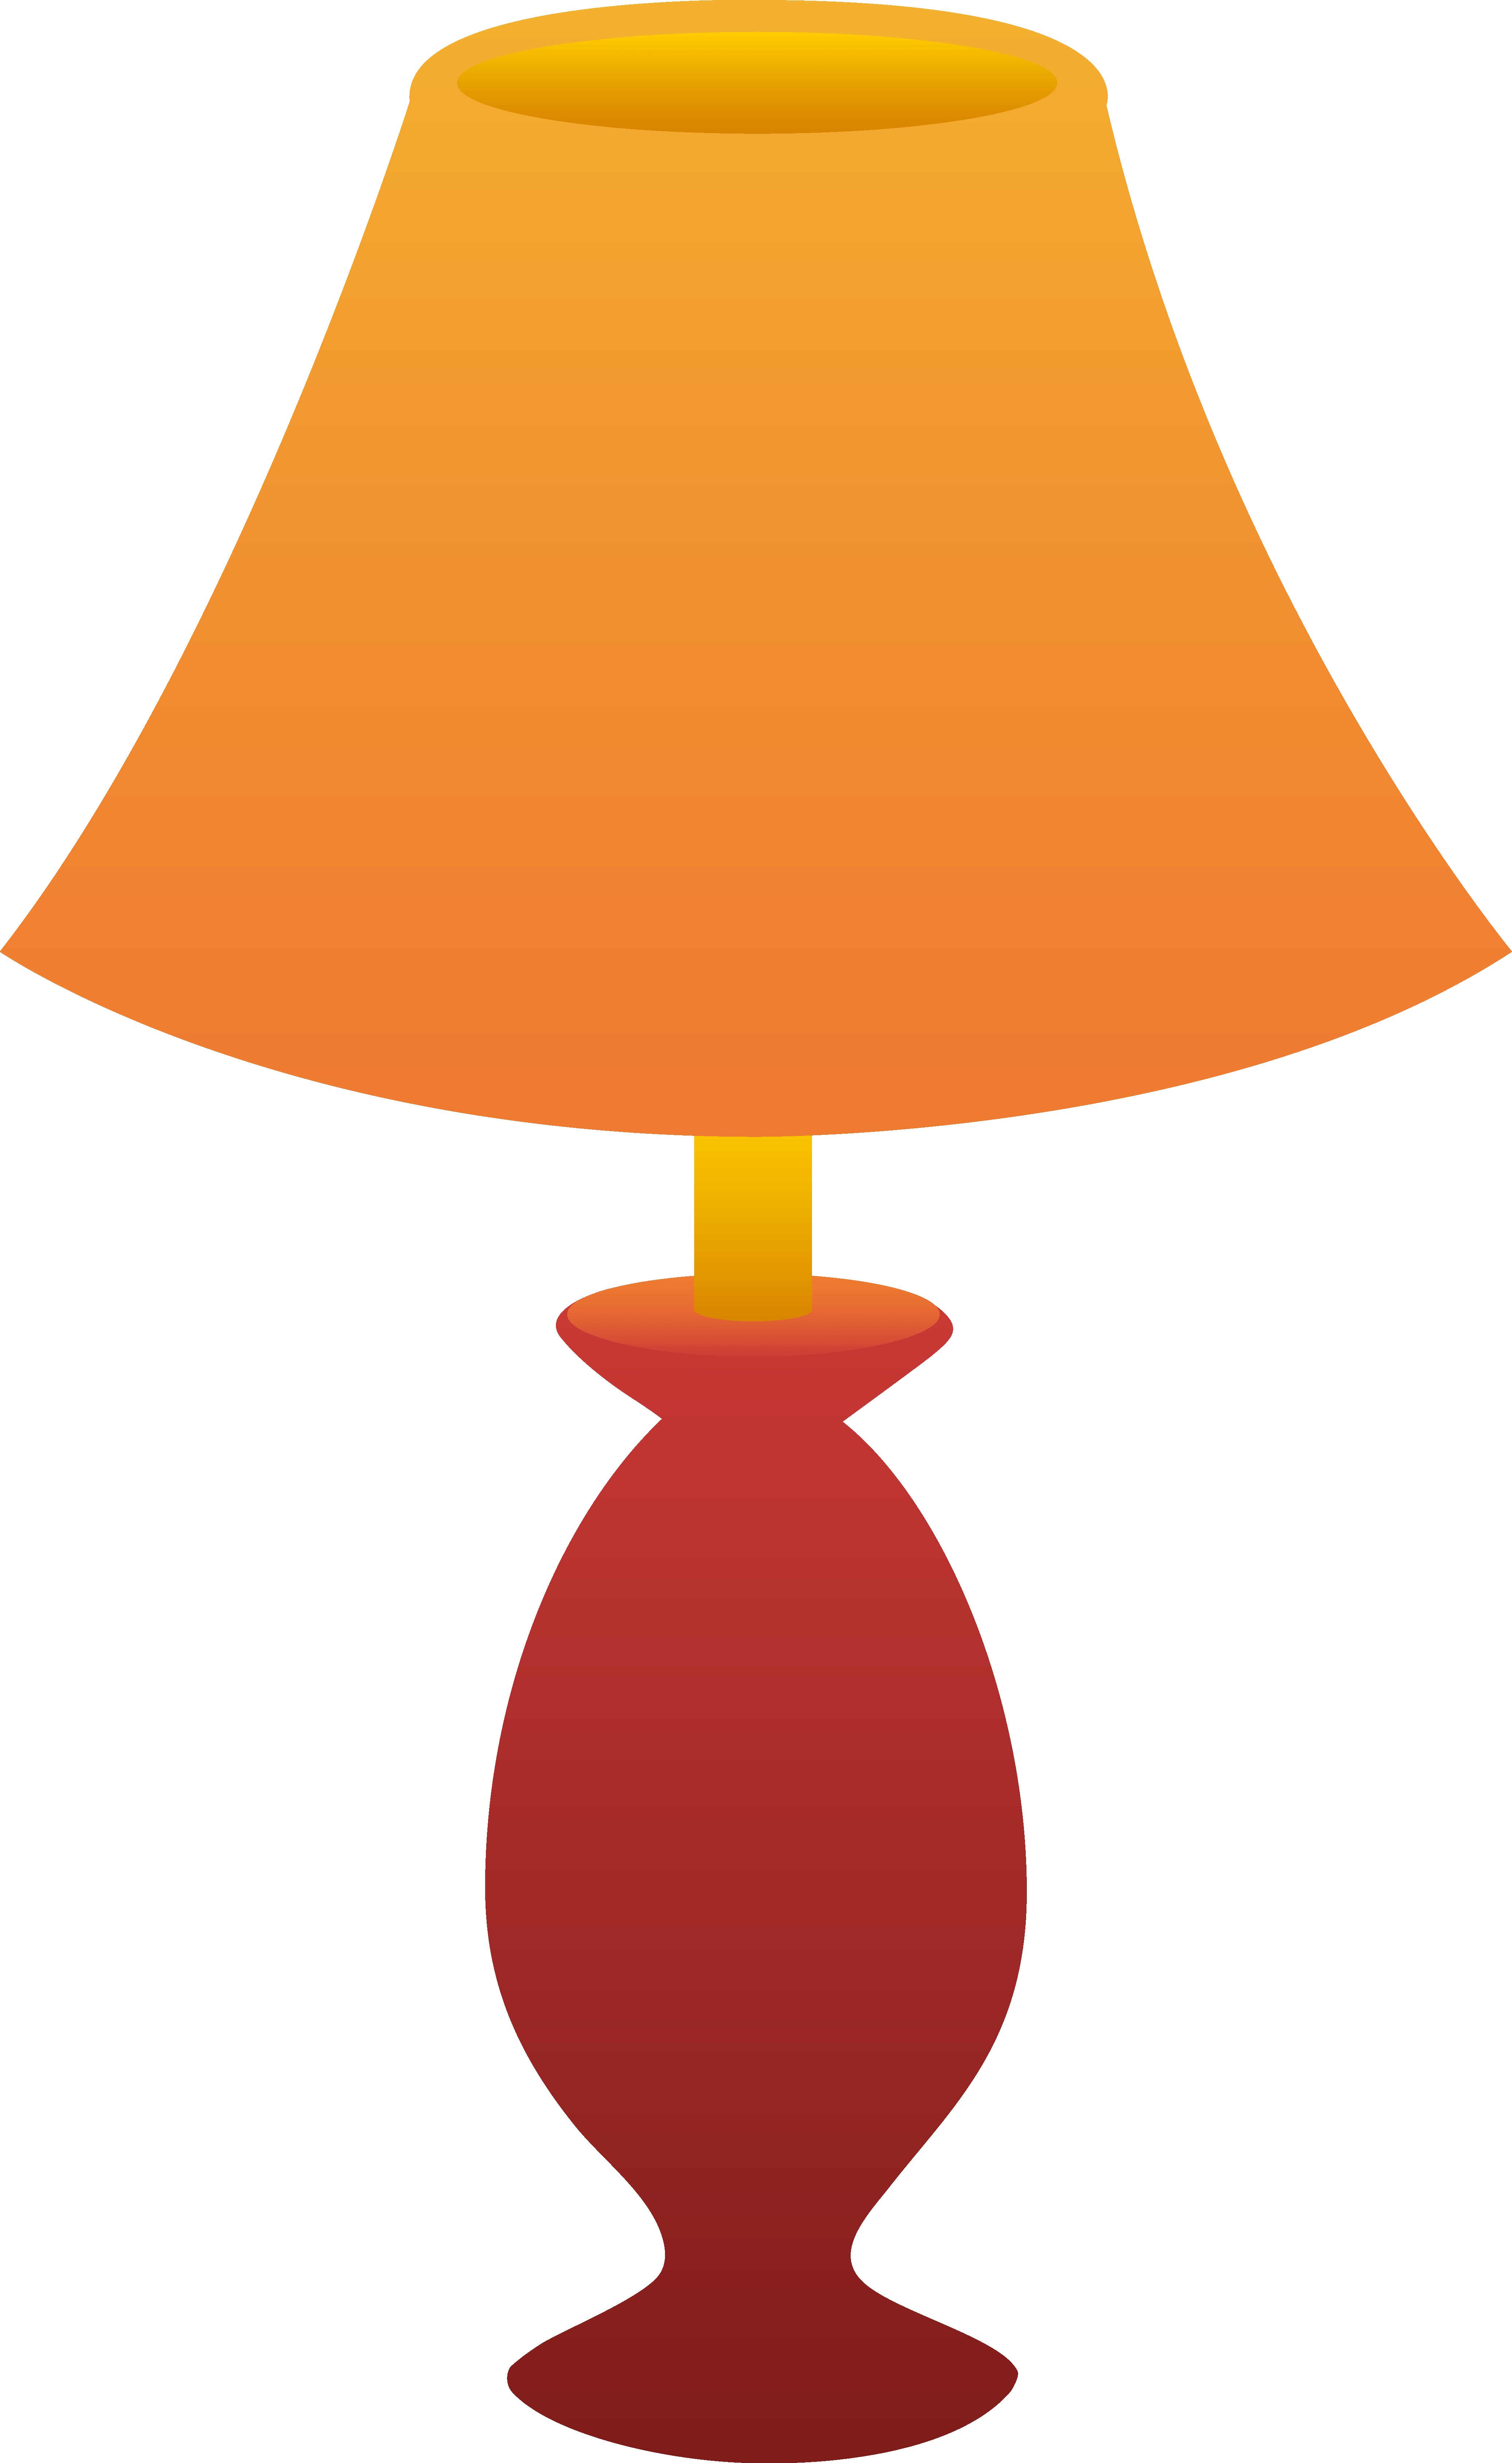 Lamp clipart free vector freeuse download Lamp clipart free 2 » Clipart Portal vector freeuse download